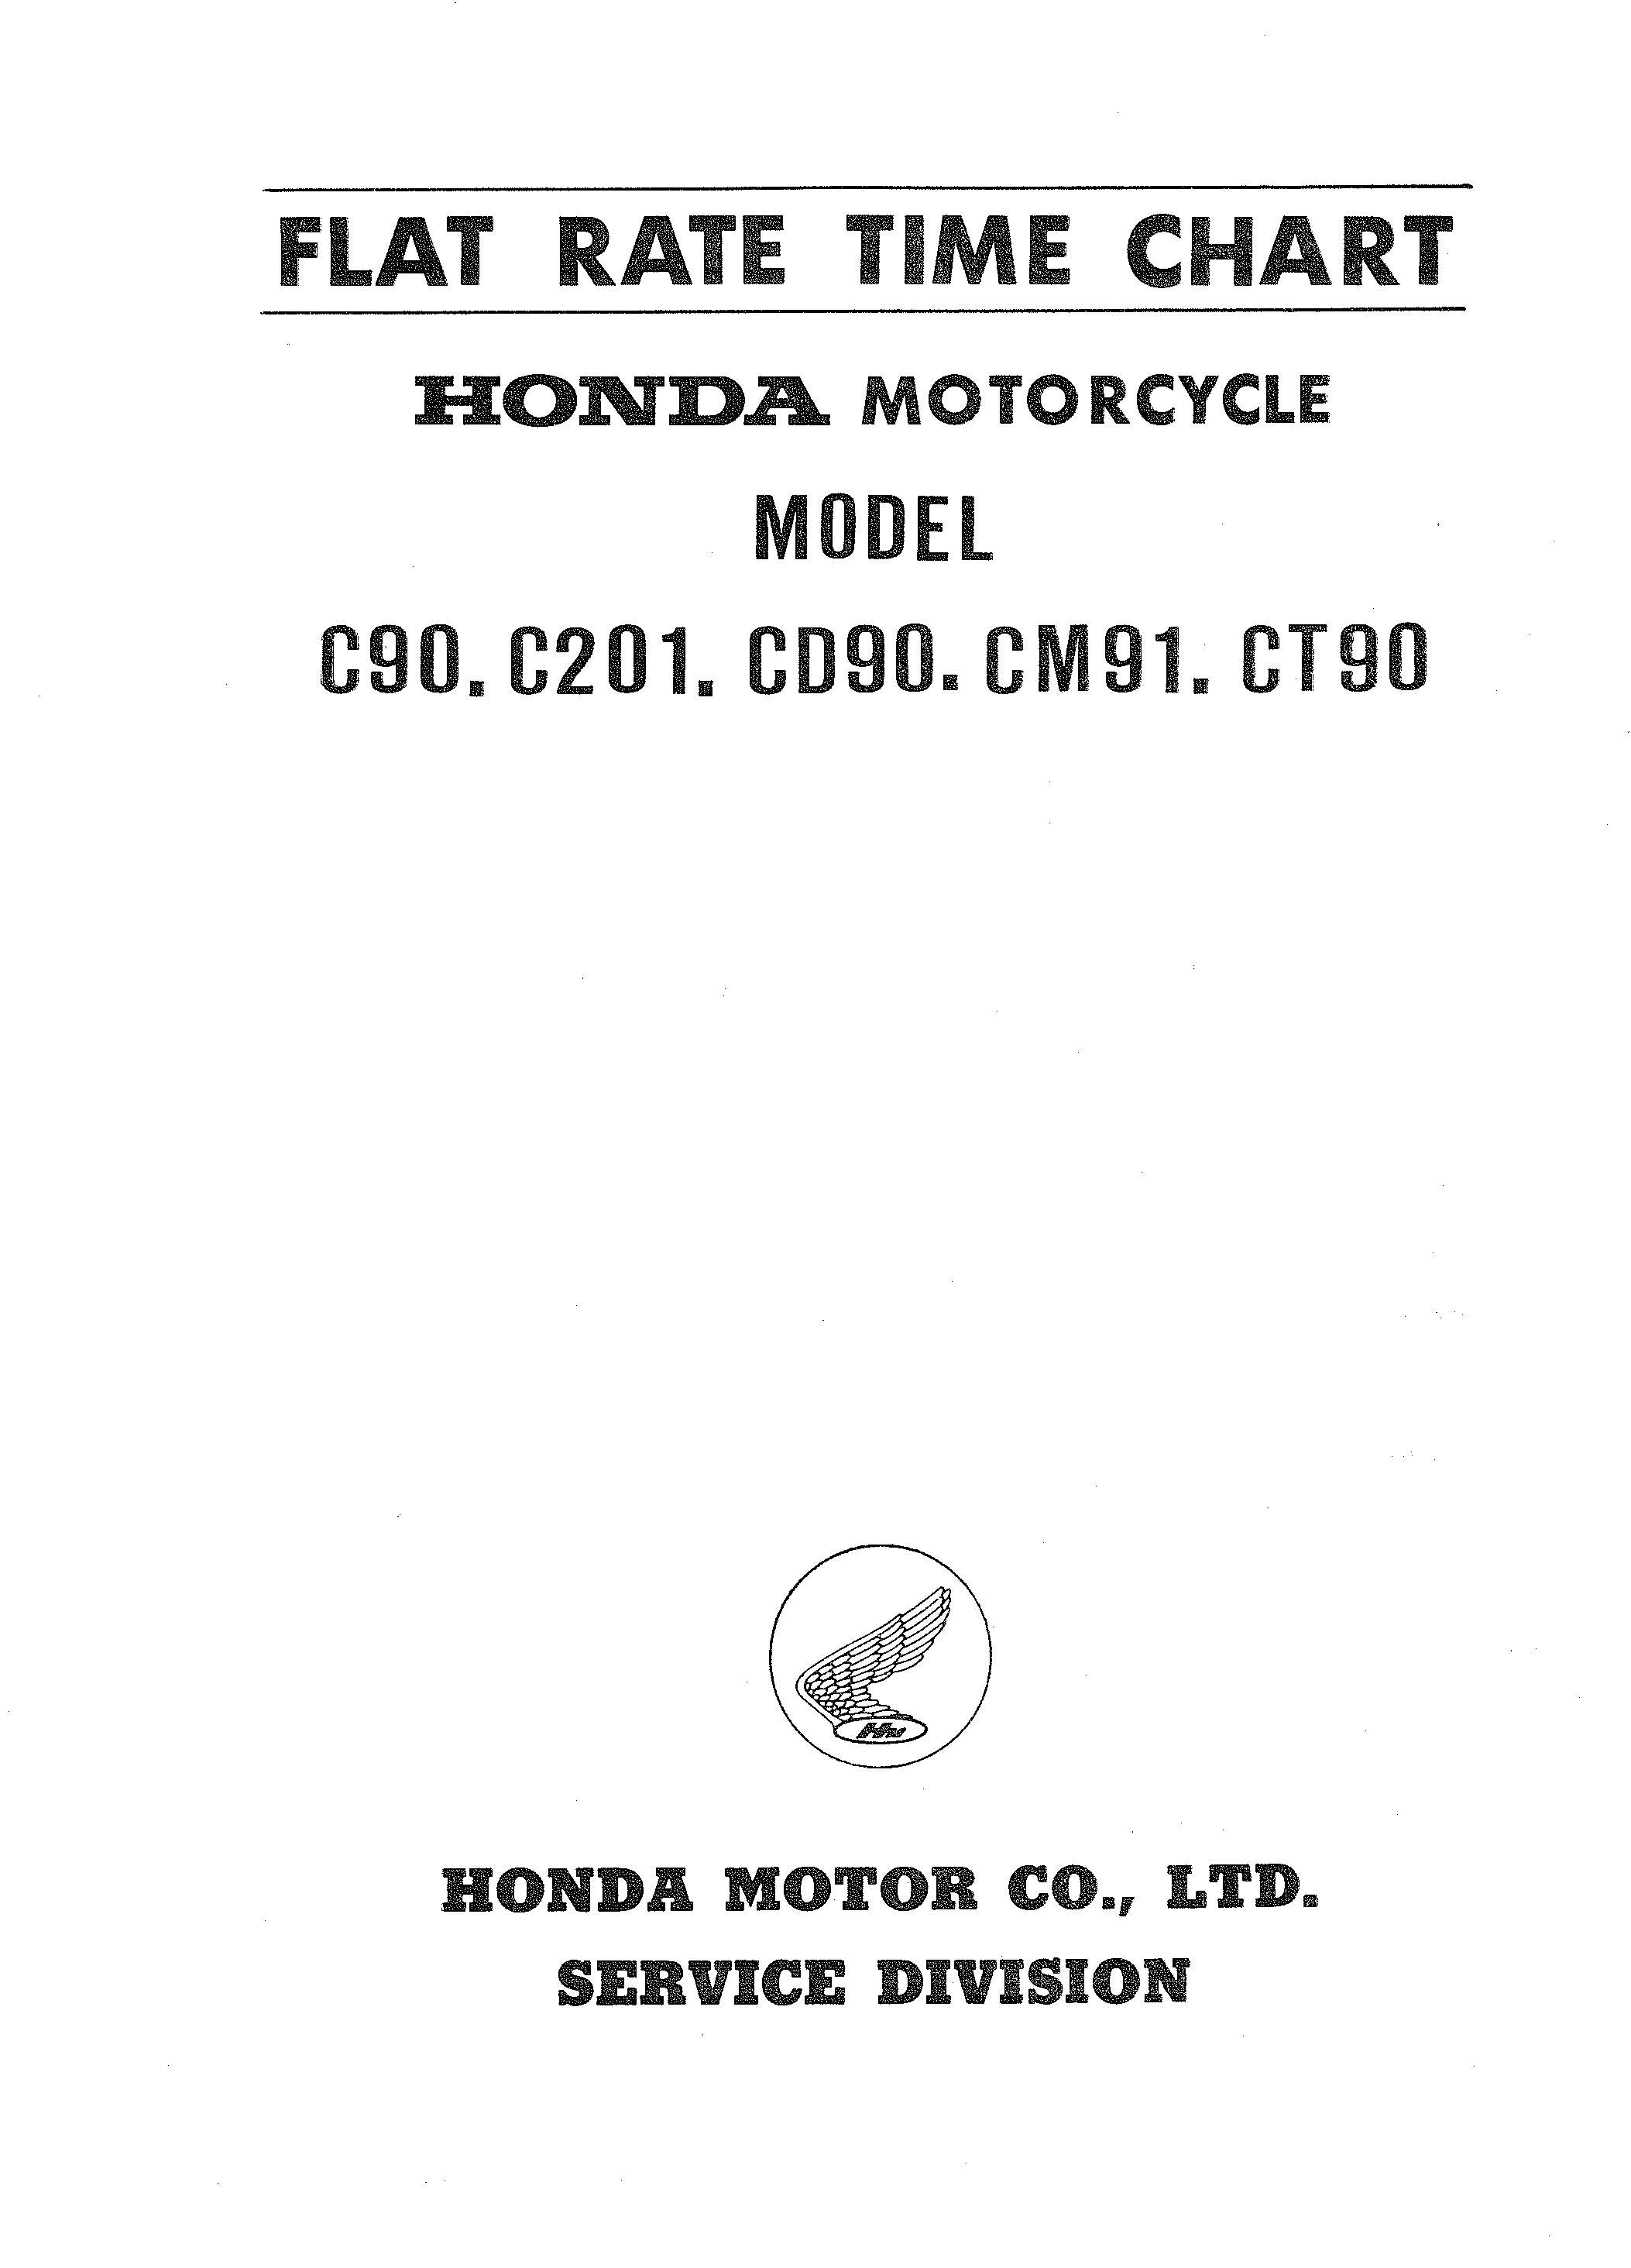 Parts list for Honda C201 (1967)